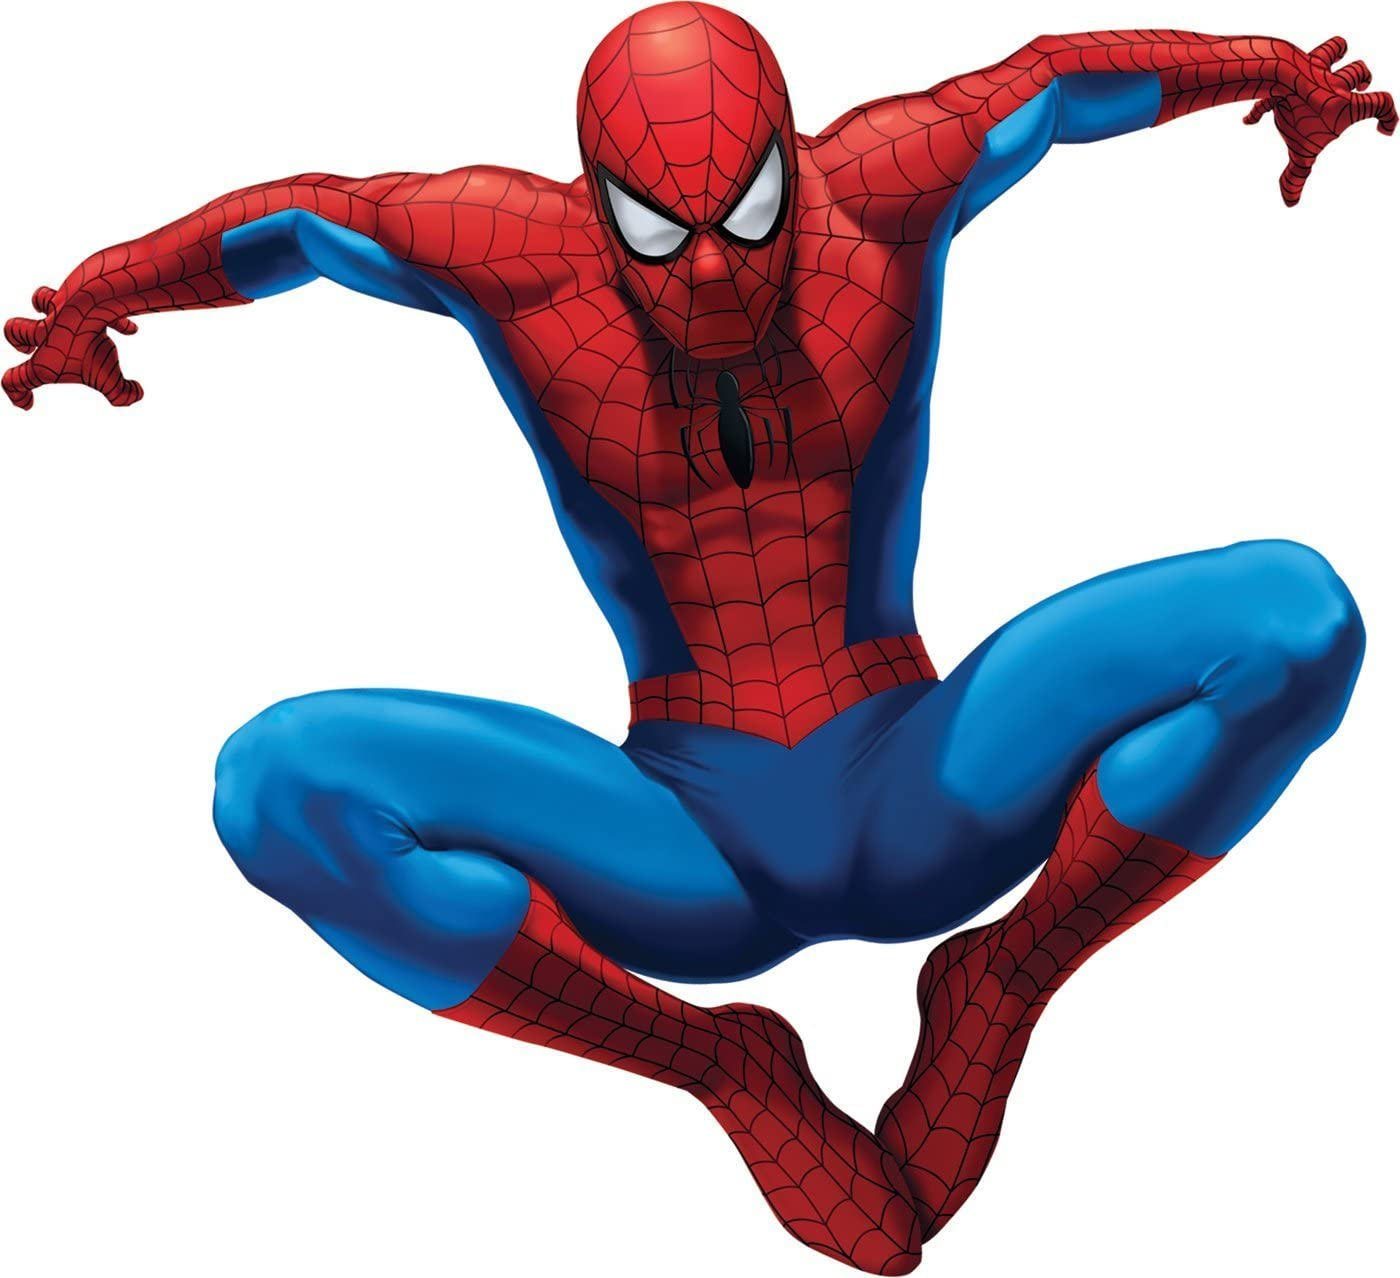 Marvel Heroes Comic - Avengers - The Amazing Spiderman Giant Wall Decal